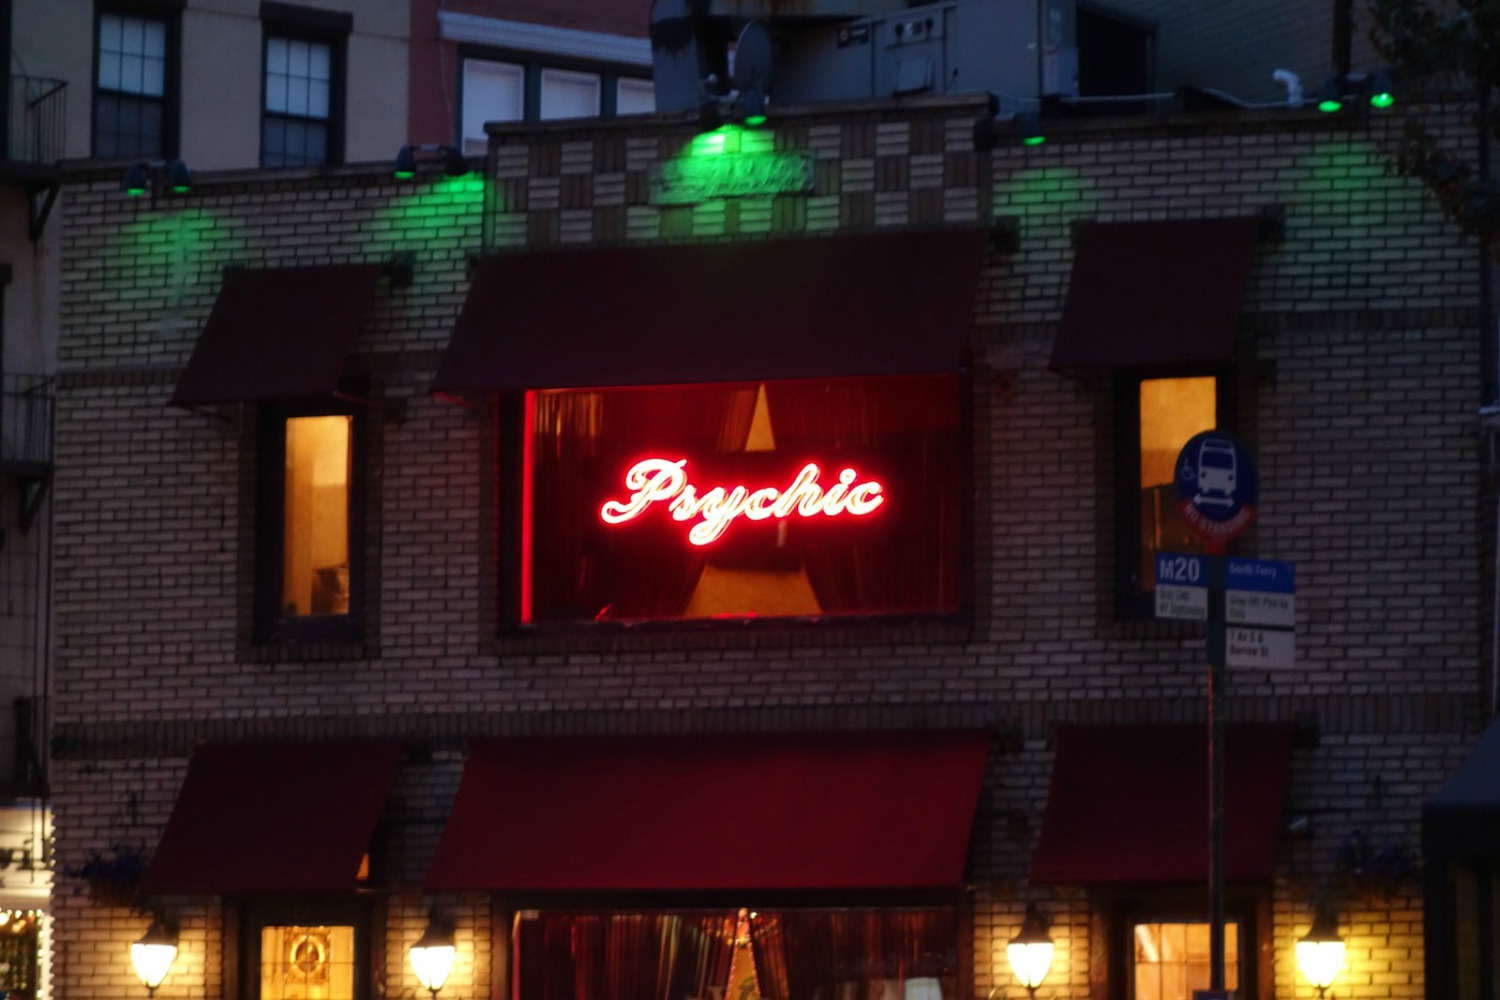 A (non-historic) psychic sign in neon